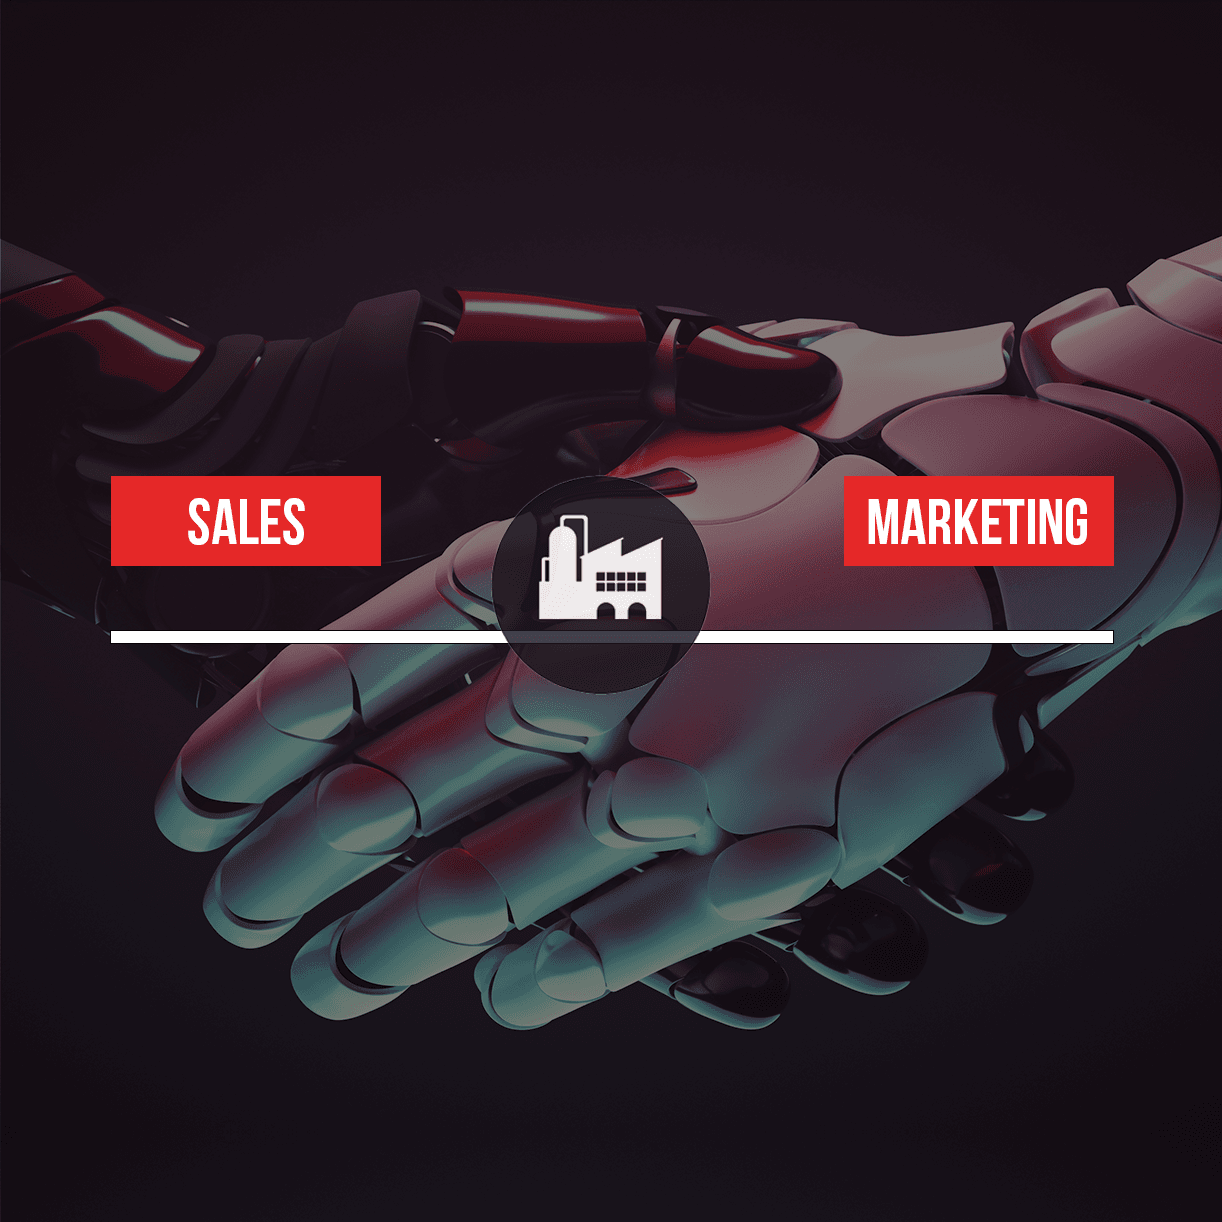 """Picture of robots doing an handshake, branded """"sales and marketing"""" with the factory icon in the middle. This is symbolising to balance the sales and marketing by using the factory"""